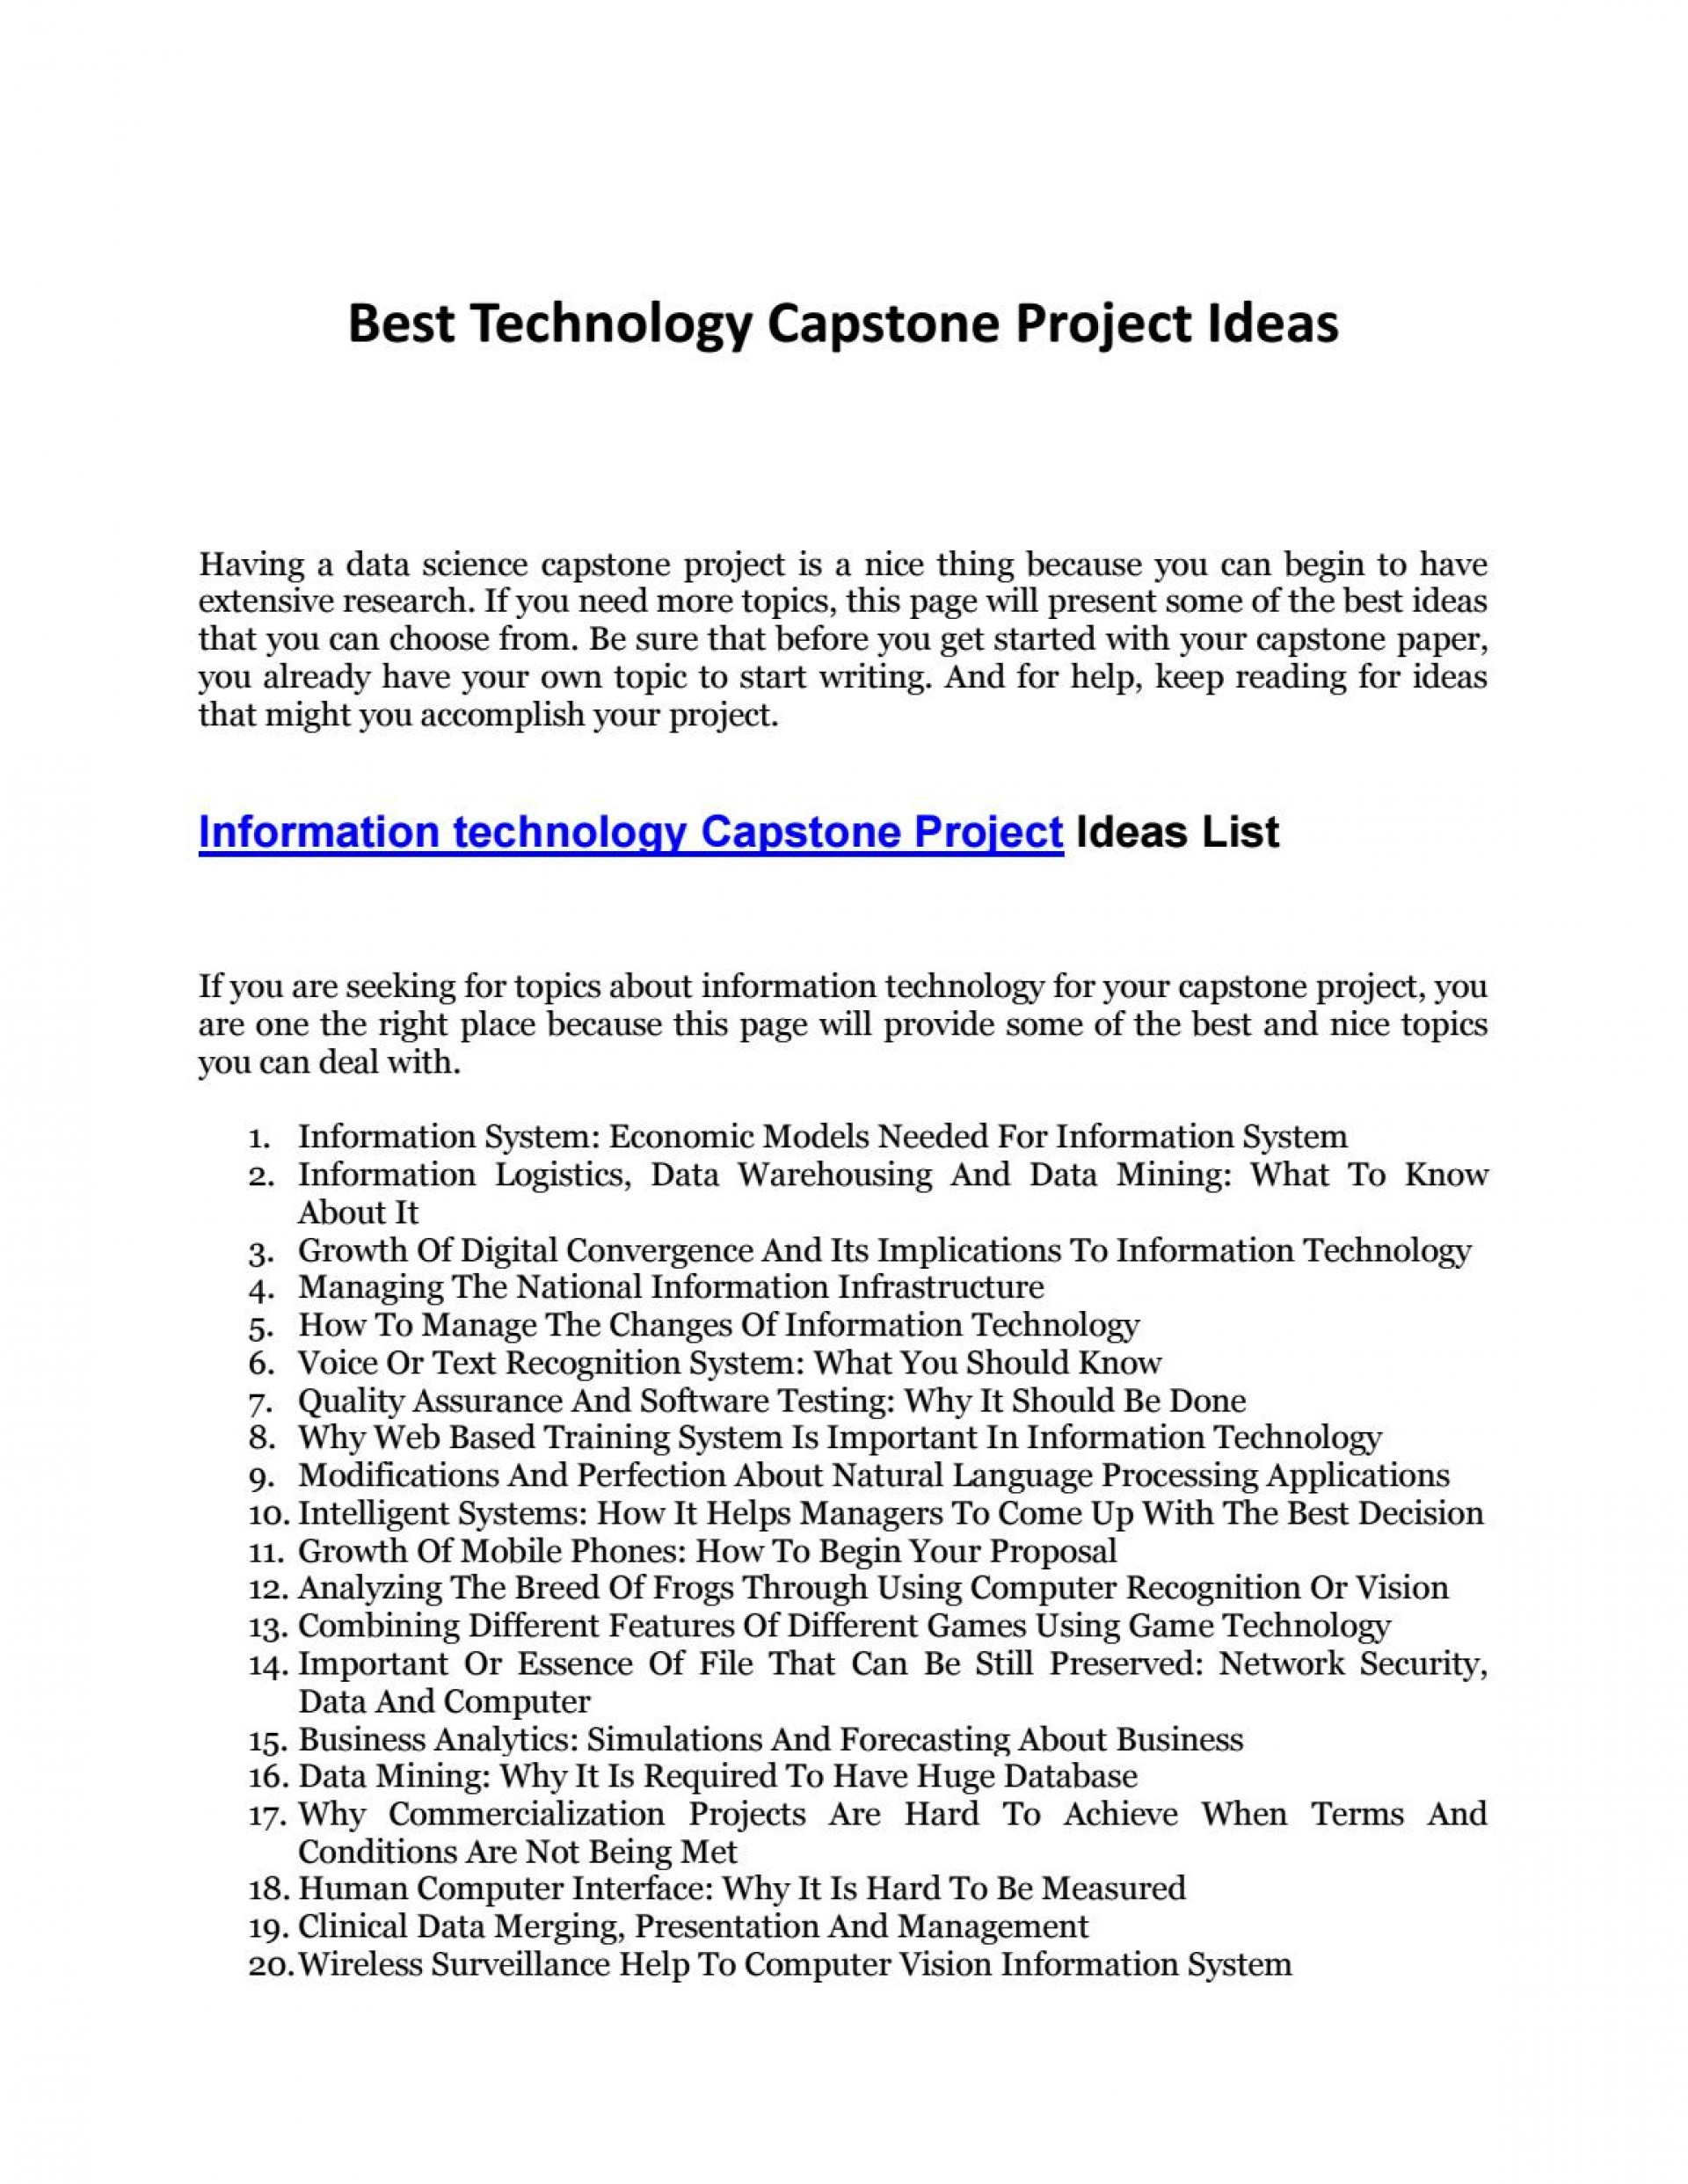 003 Best Topic For Research Paper In Technology Page 1 Shocking Information 1920